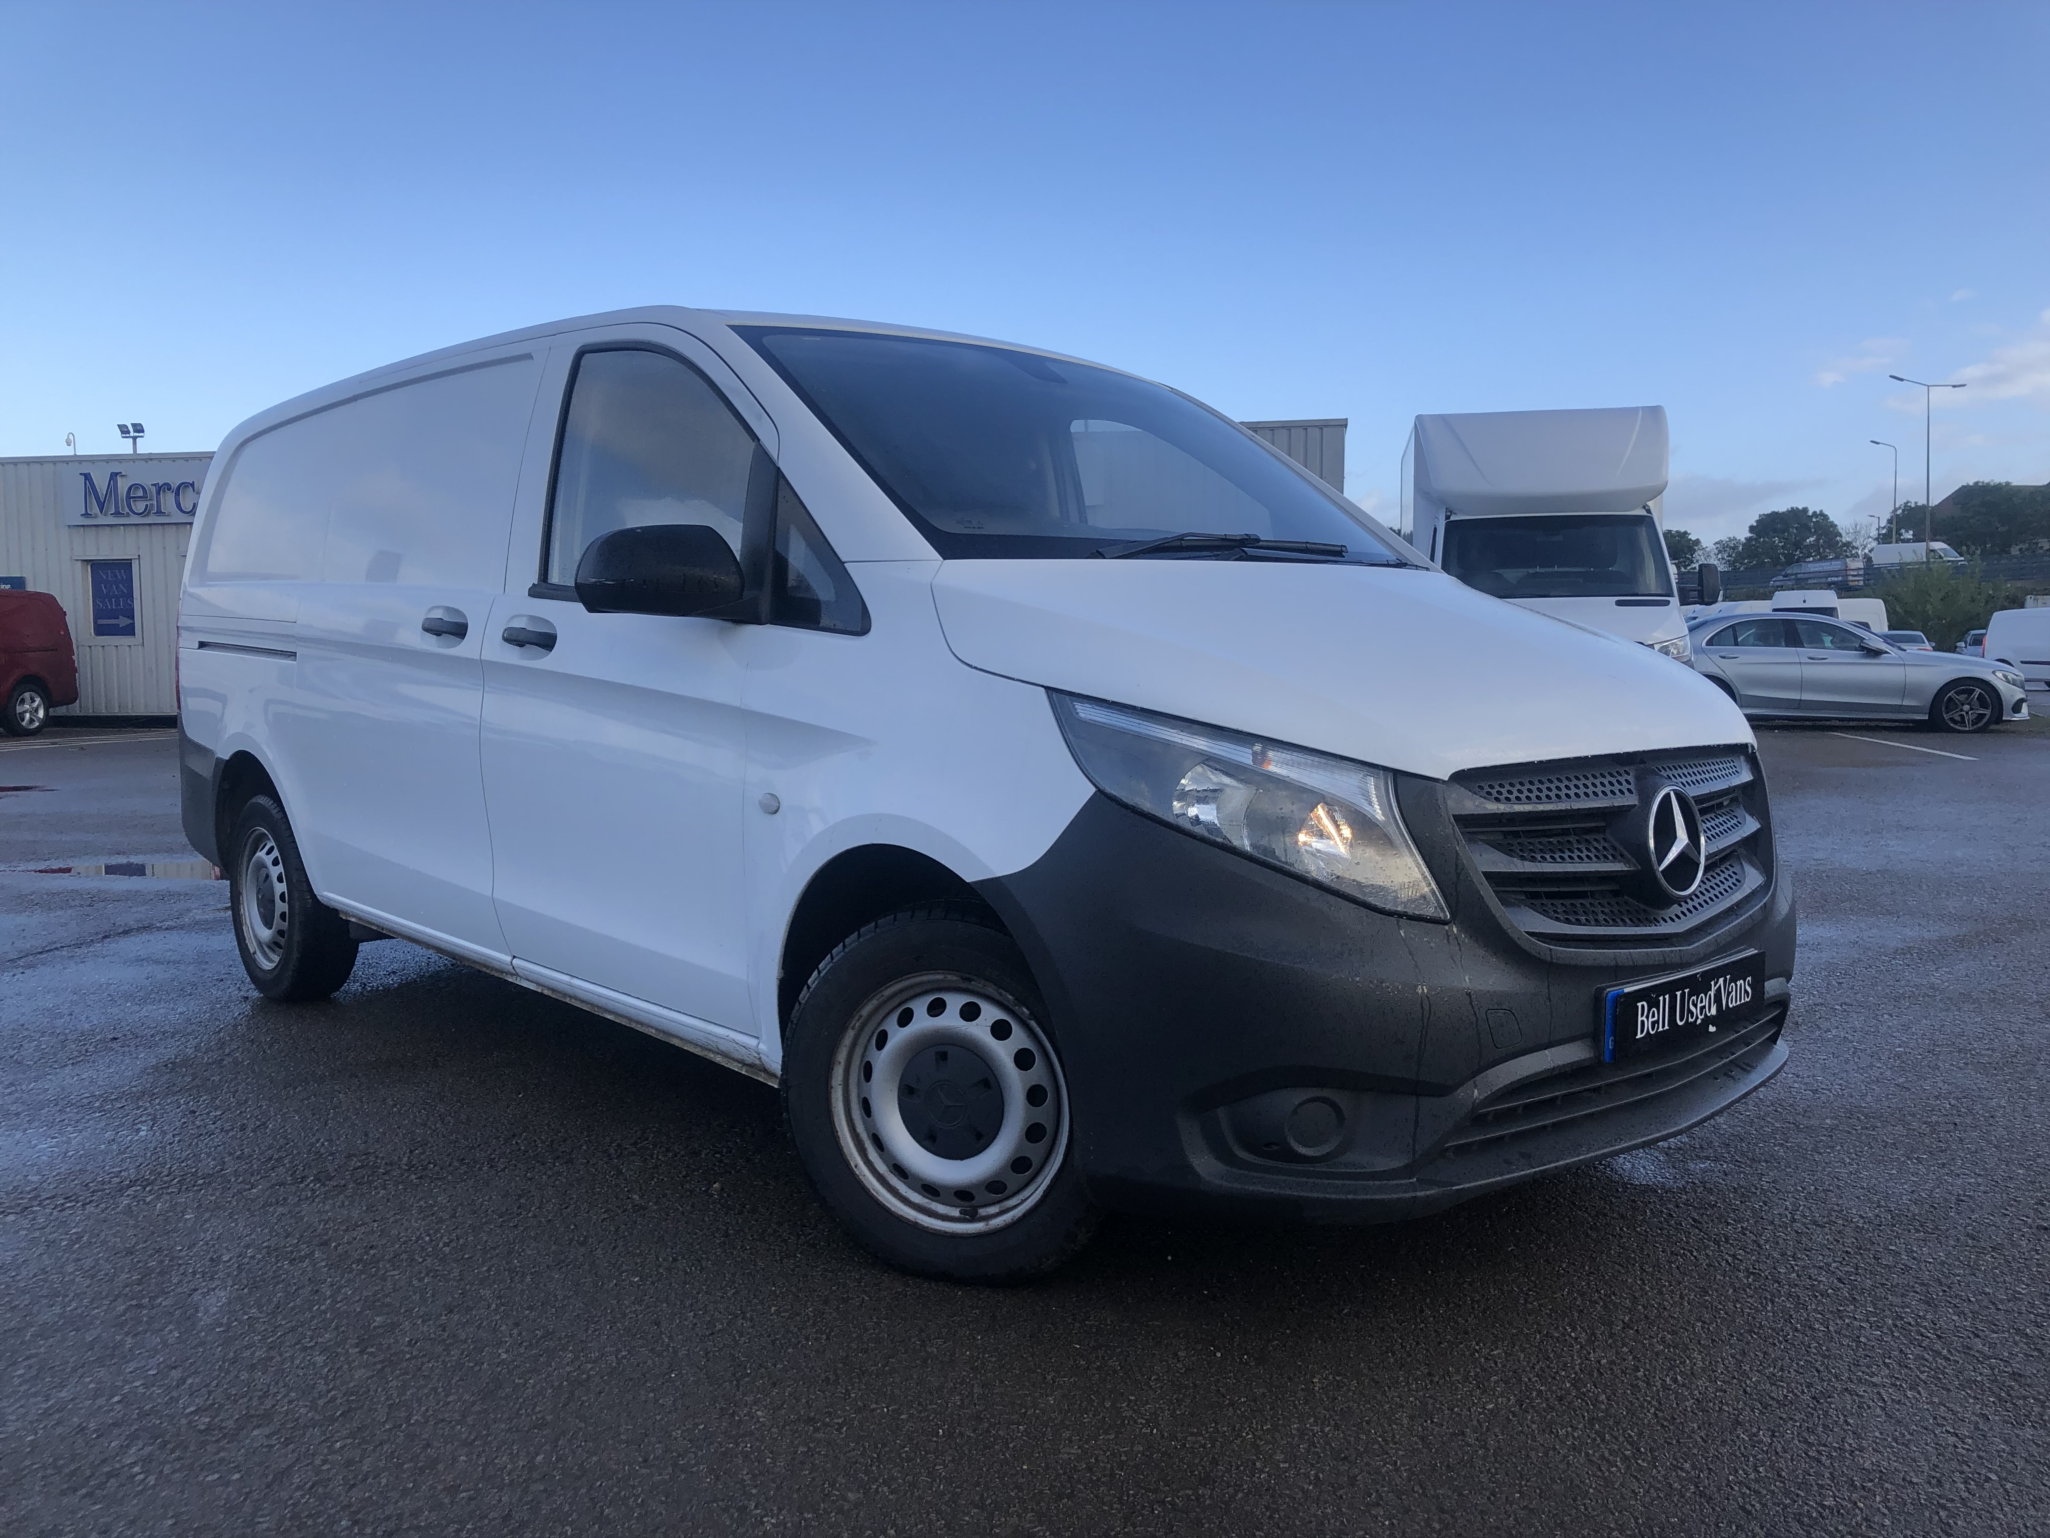 Mercedes-Benz Vito 111CDI Van, Long